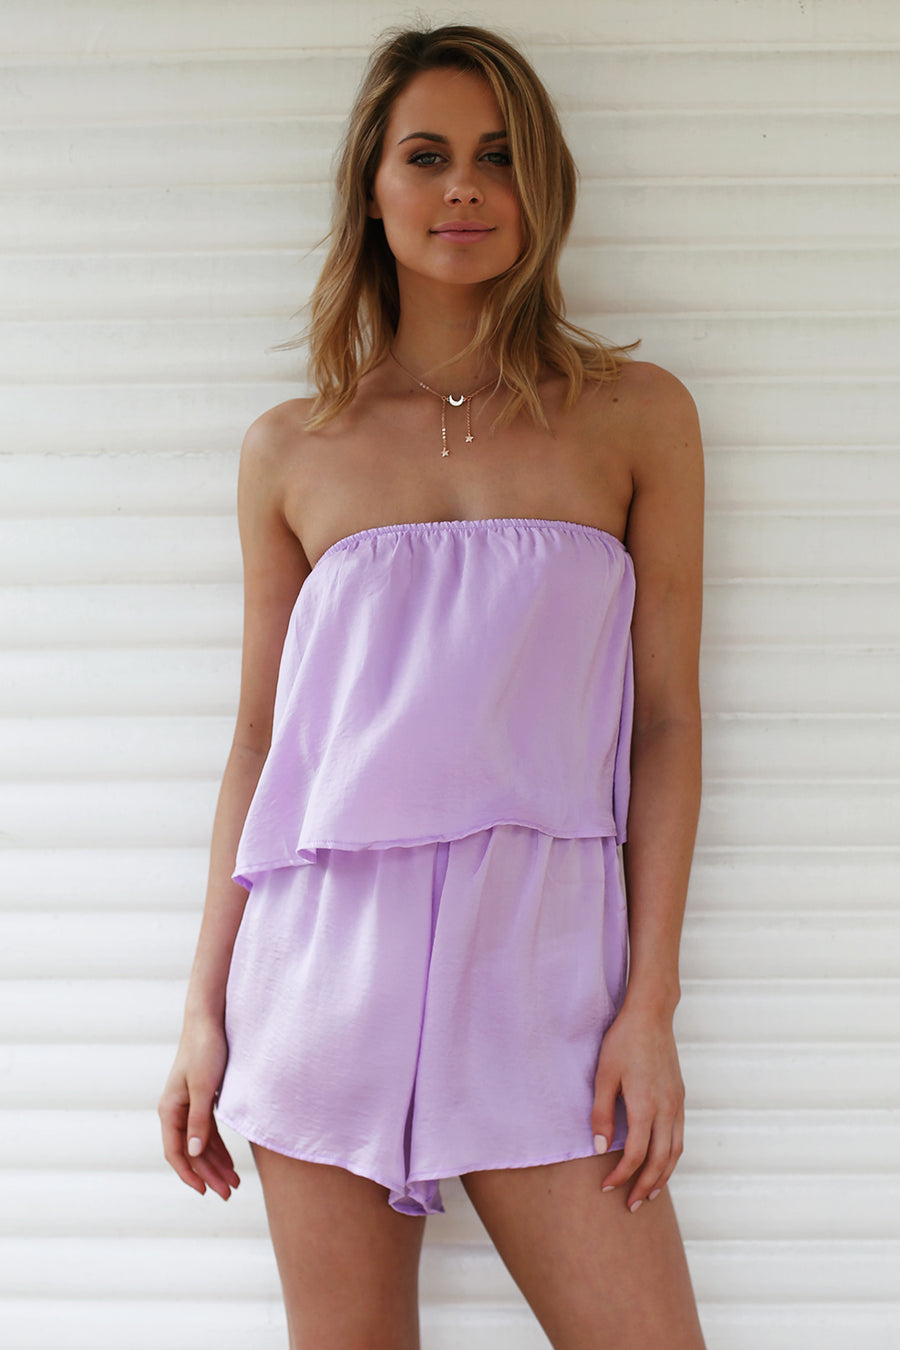 Flirt With Fire Playsuit in Lilac